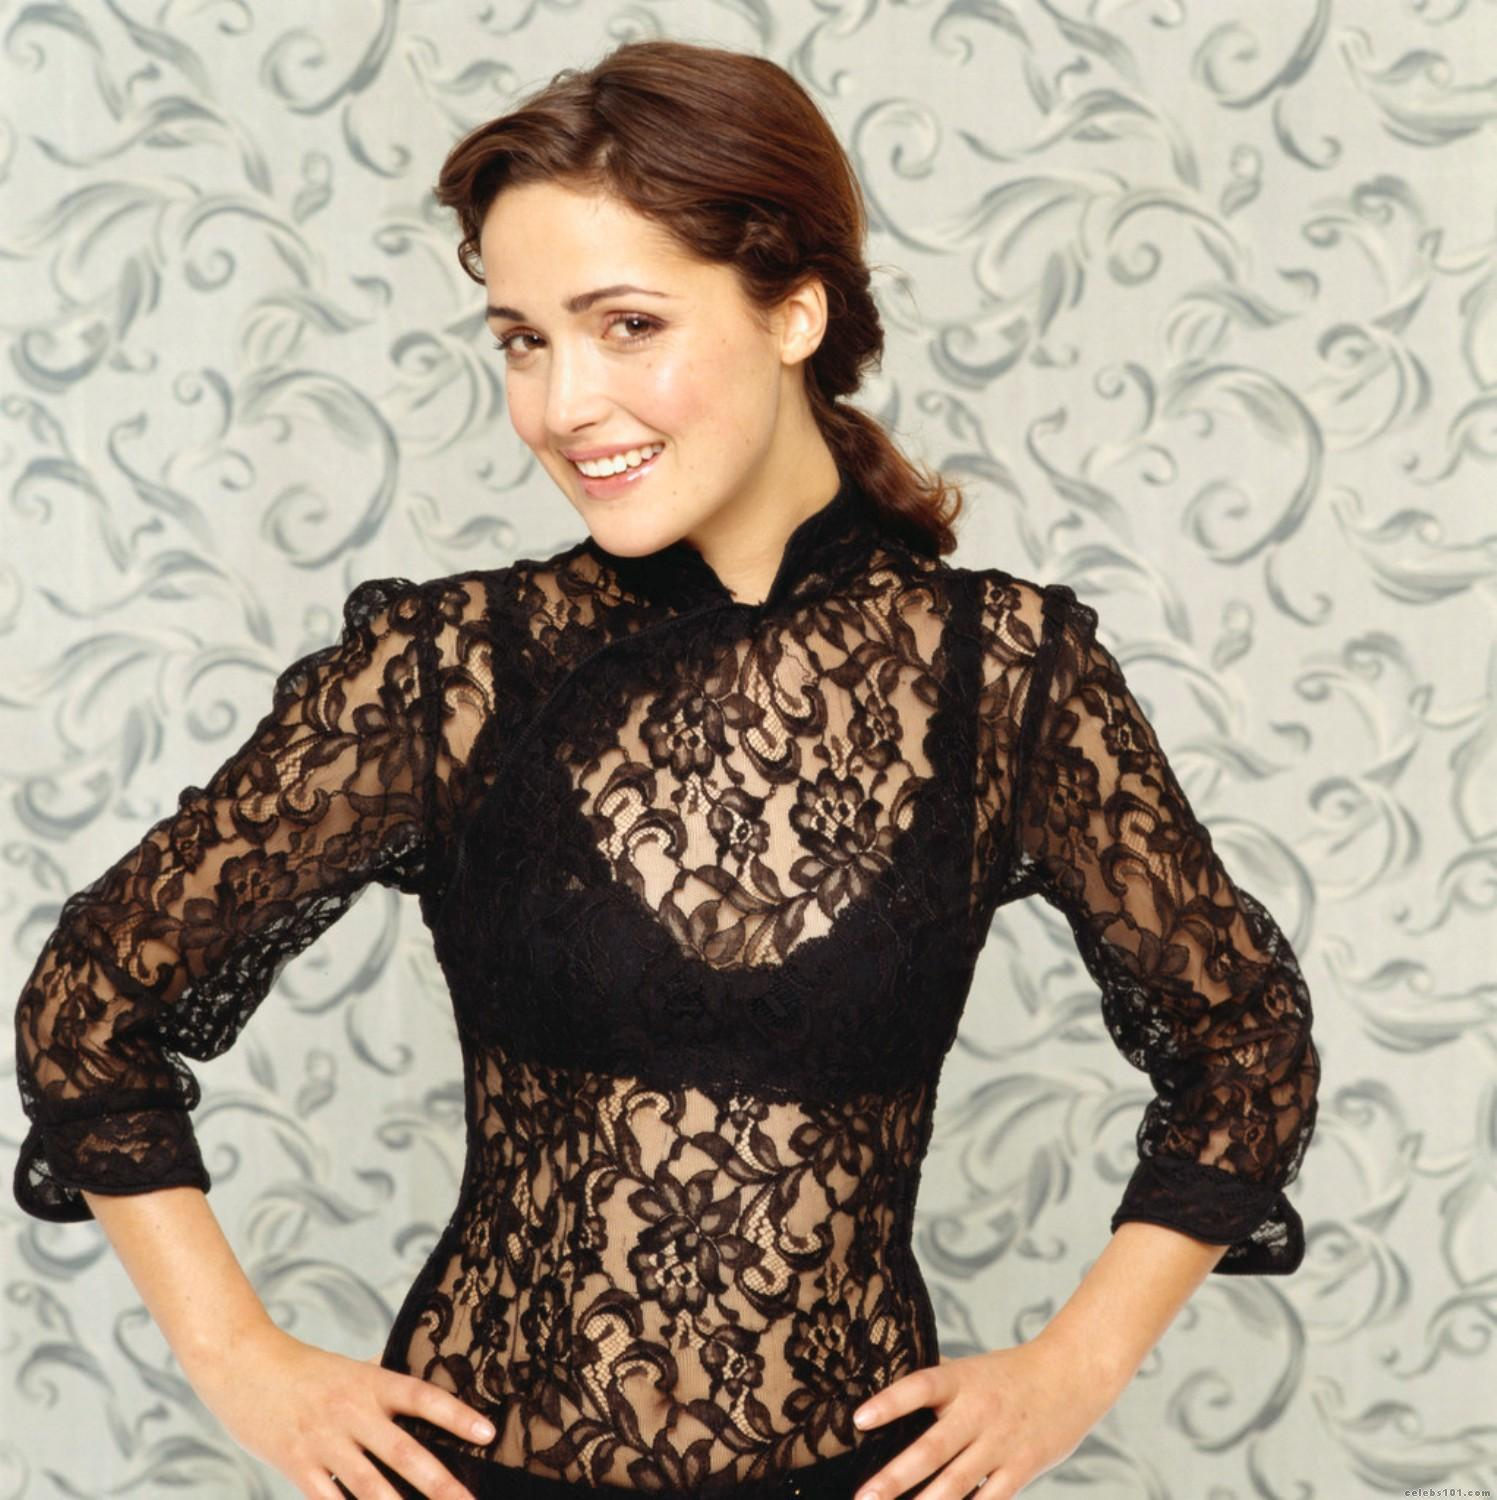 Rose Byrne Height Weight Age Bra Size Body Stats Affairs Boy Friends Details